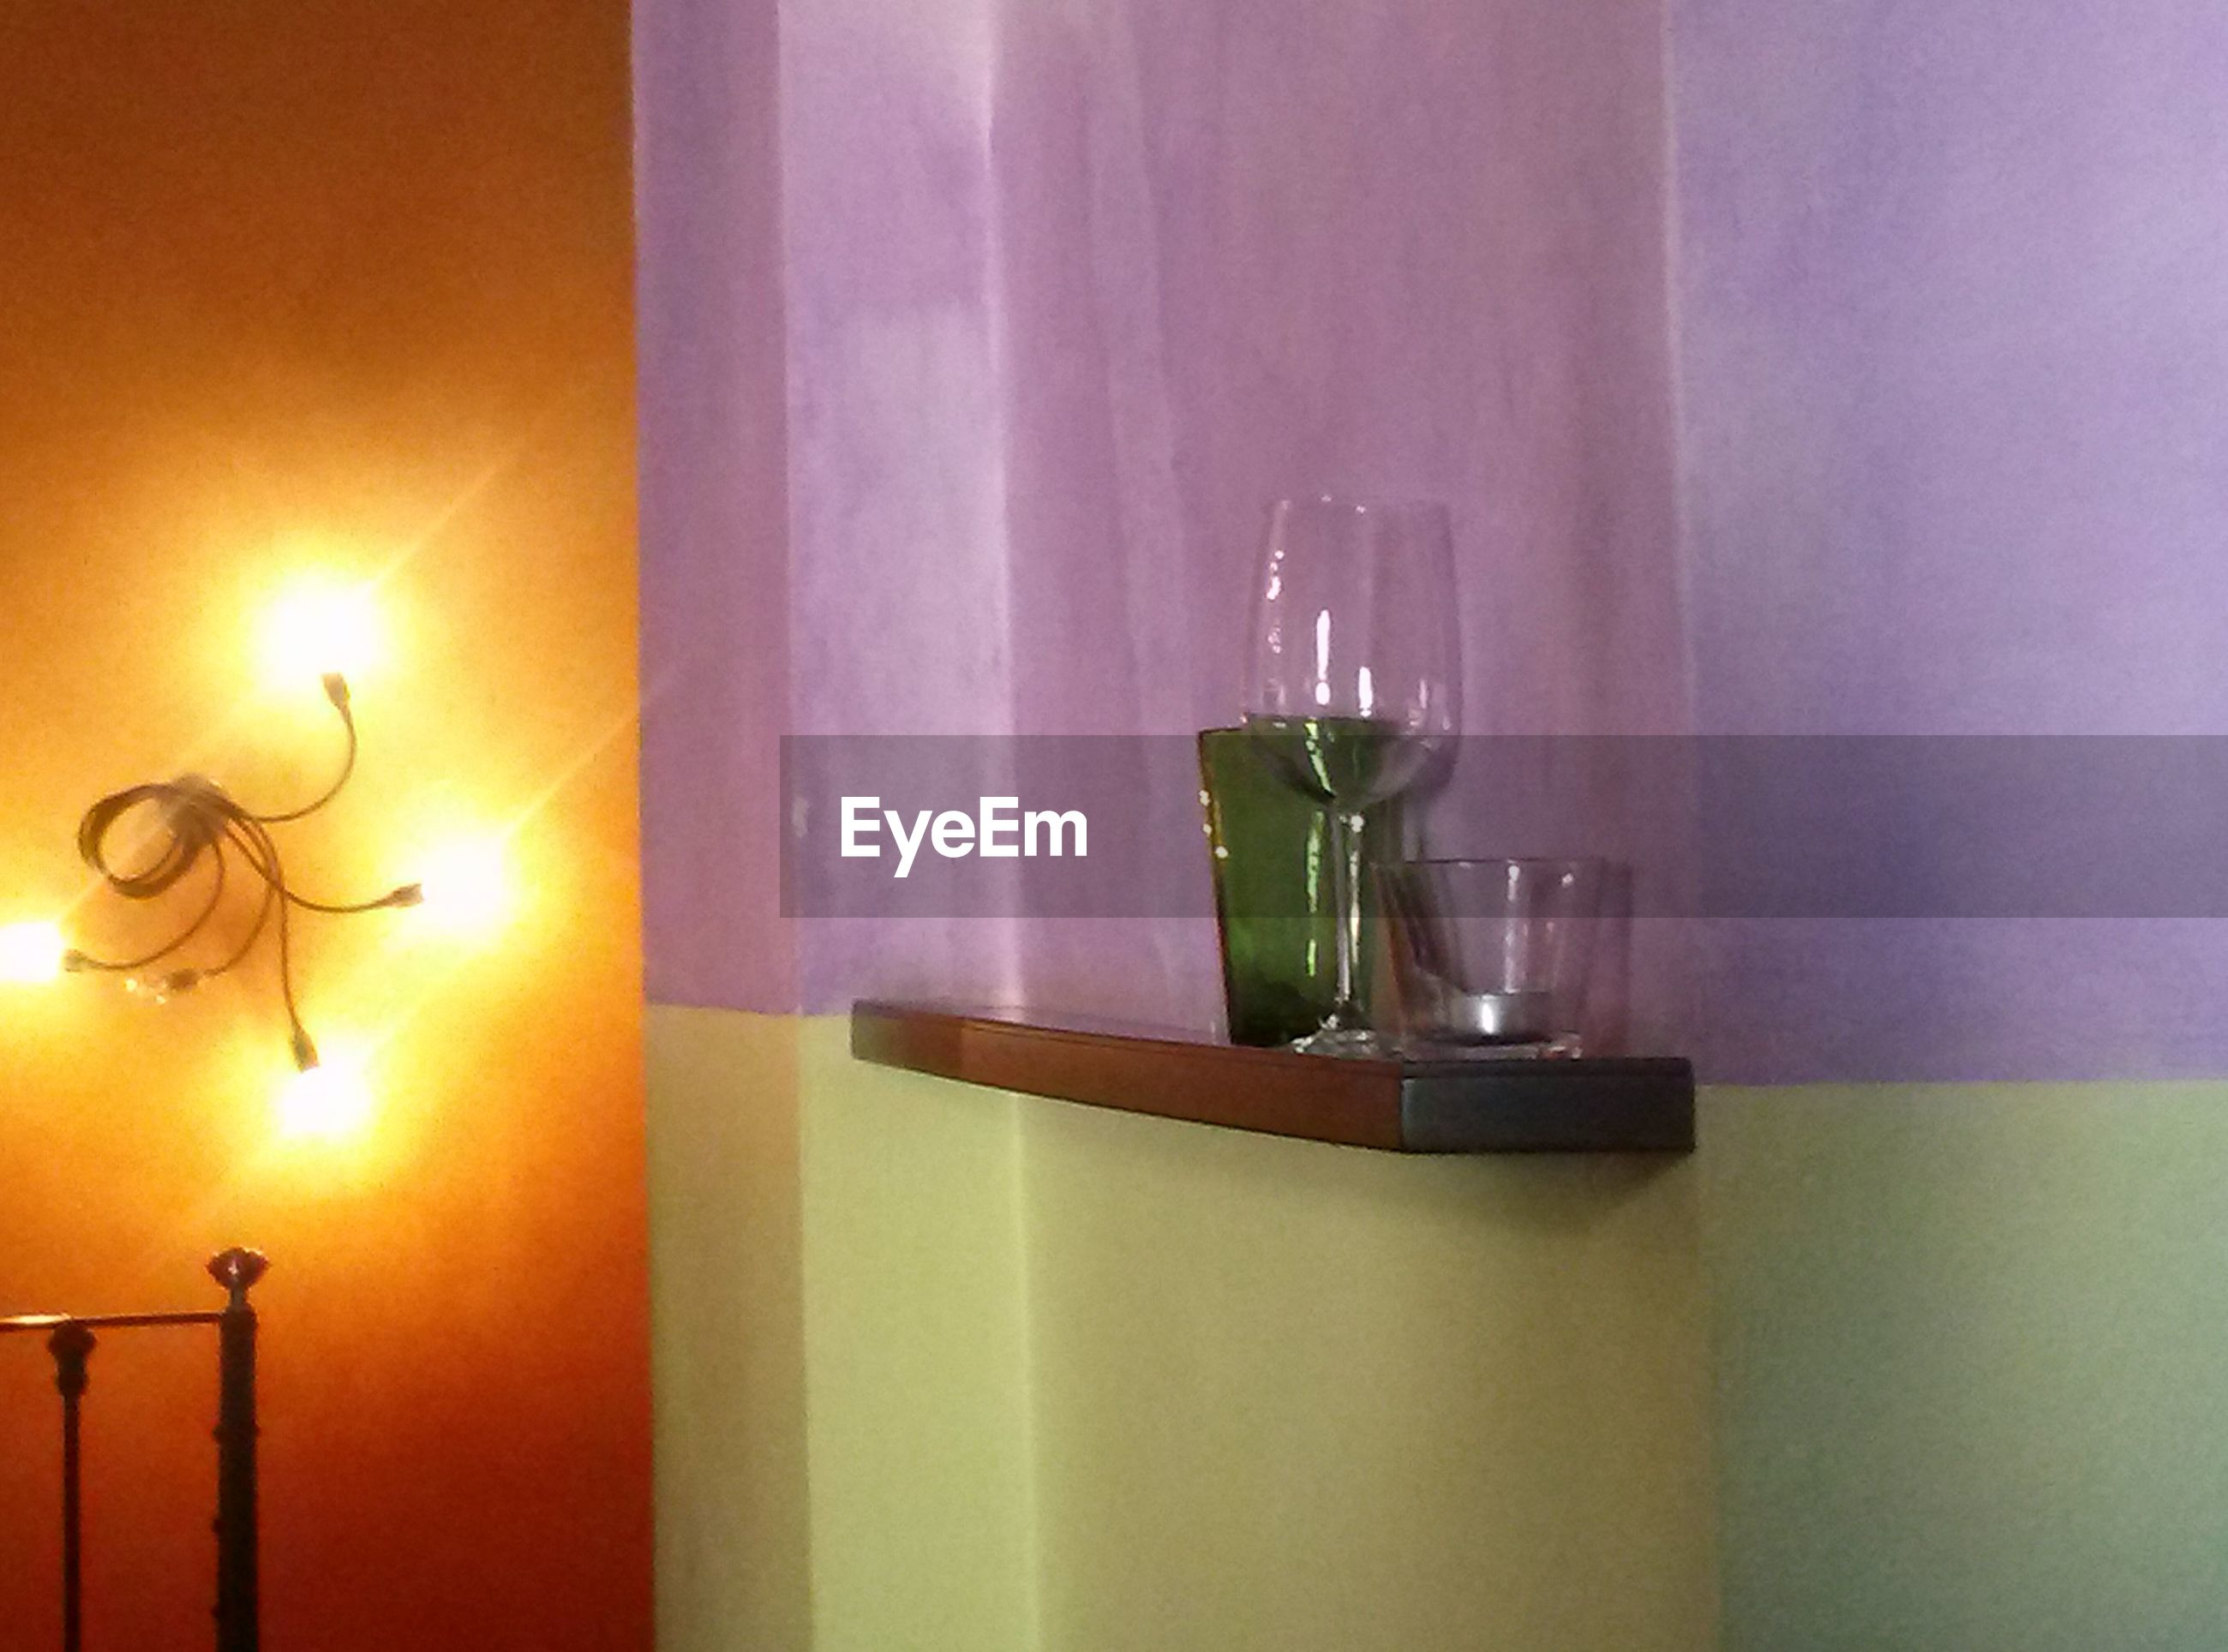 indoors, illuminated, lighting equipment, home interior, candle, glowing, hanging, decoration, electric lamp, table, wall - building feature, lamp, decor, no people, electricity, light - natural phenomenon, lit, burning, flame, glass - material